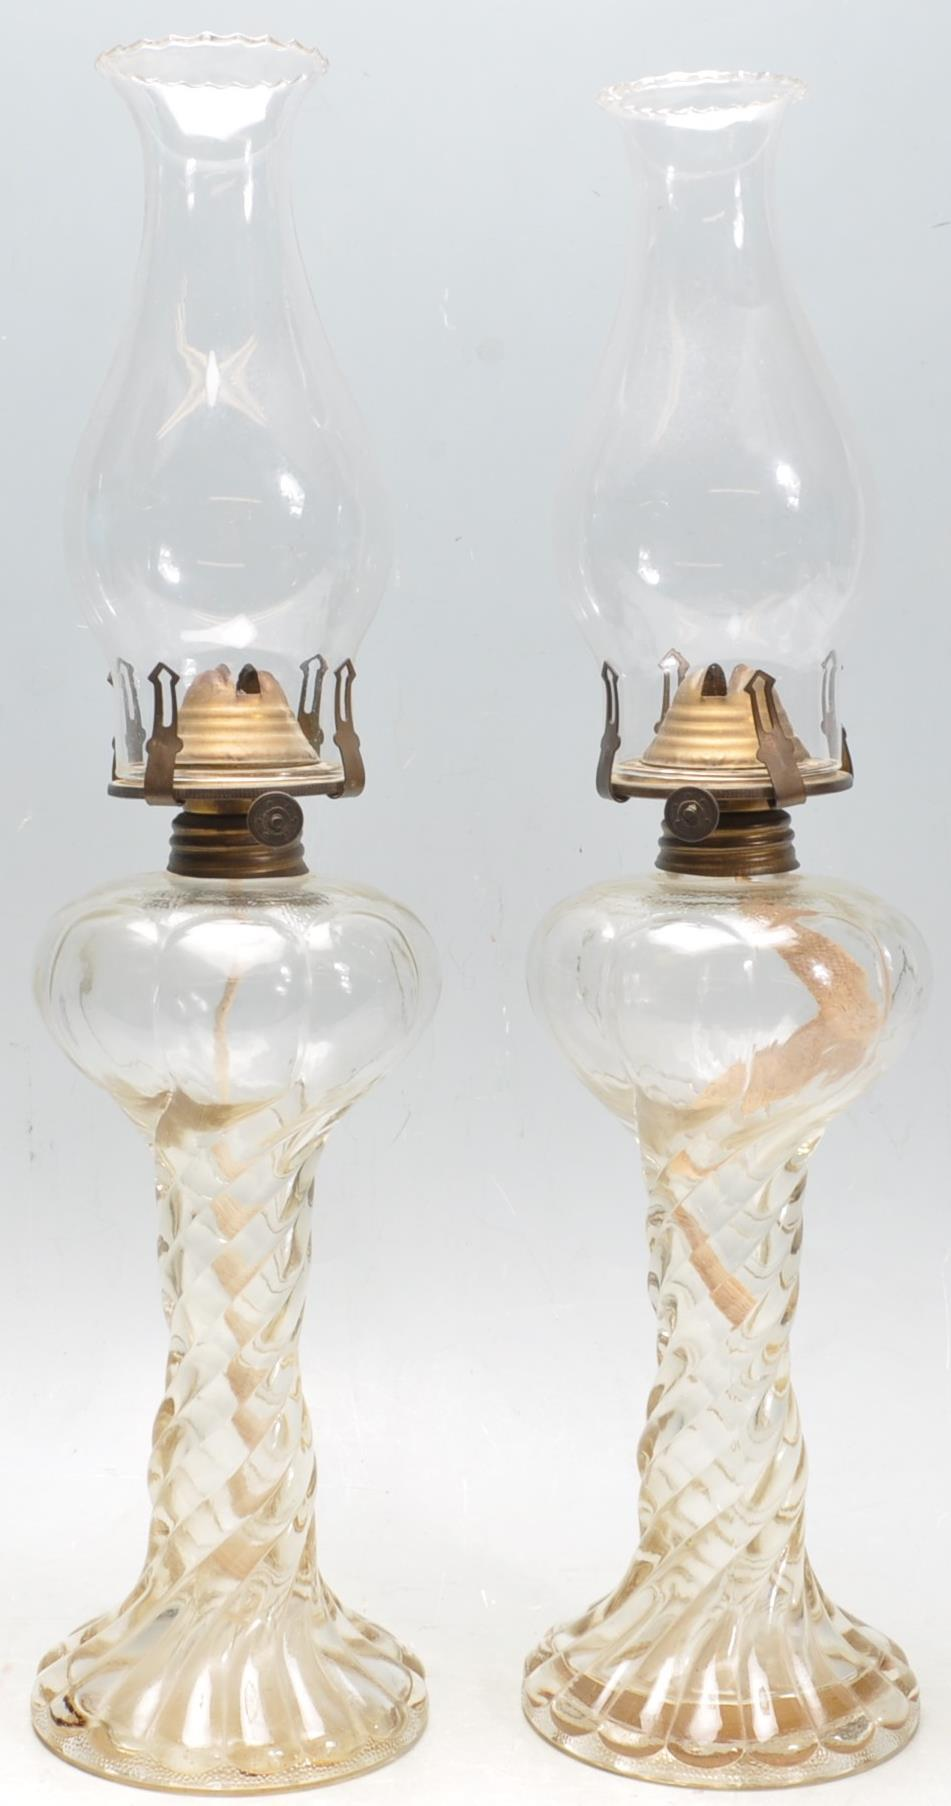 PAIR OF EARLY 20TH CENTURY 1930S ART DECO ERA GLASS OIL LAMPS